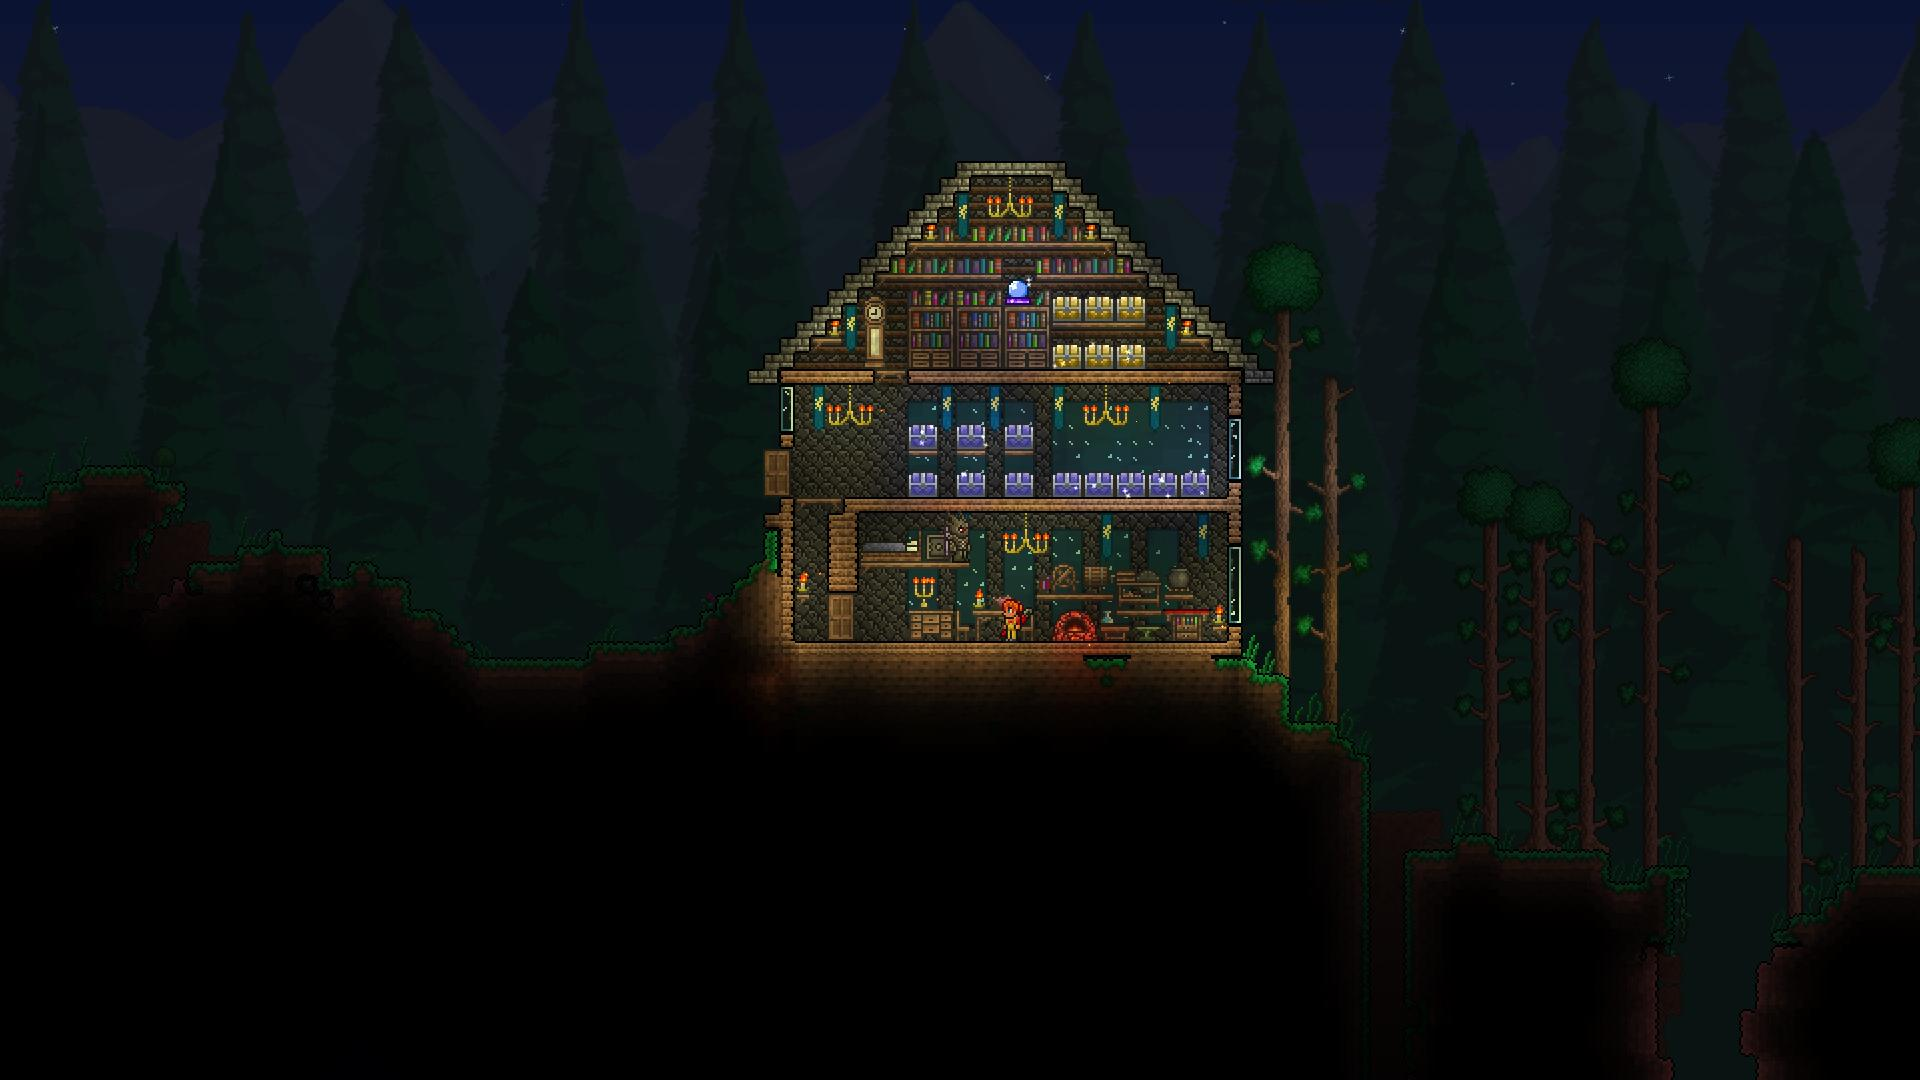 Best Of Terraria House Building Ideas | Home Design Pictures Best Terraria House Design Html on terraria home design, best runescape house design, best tiny house design, best minecraft house design, terraria tree house design, cool terraria castle design, terraria npc house design,